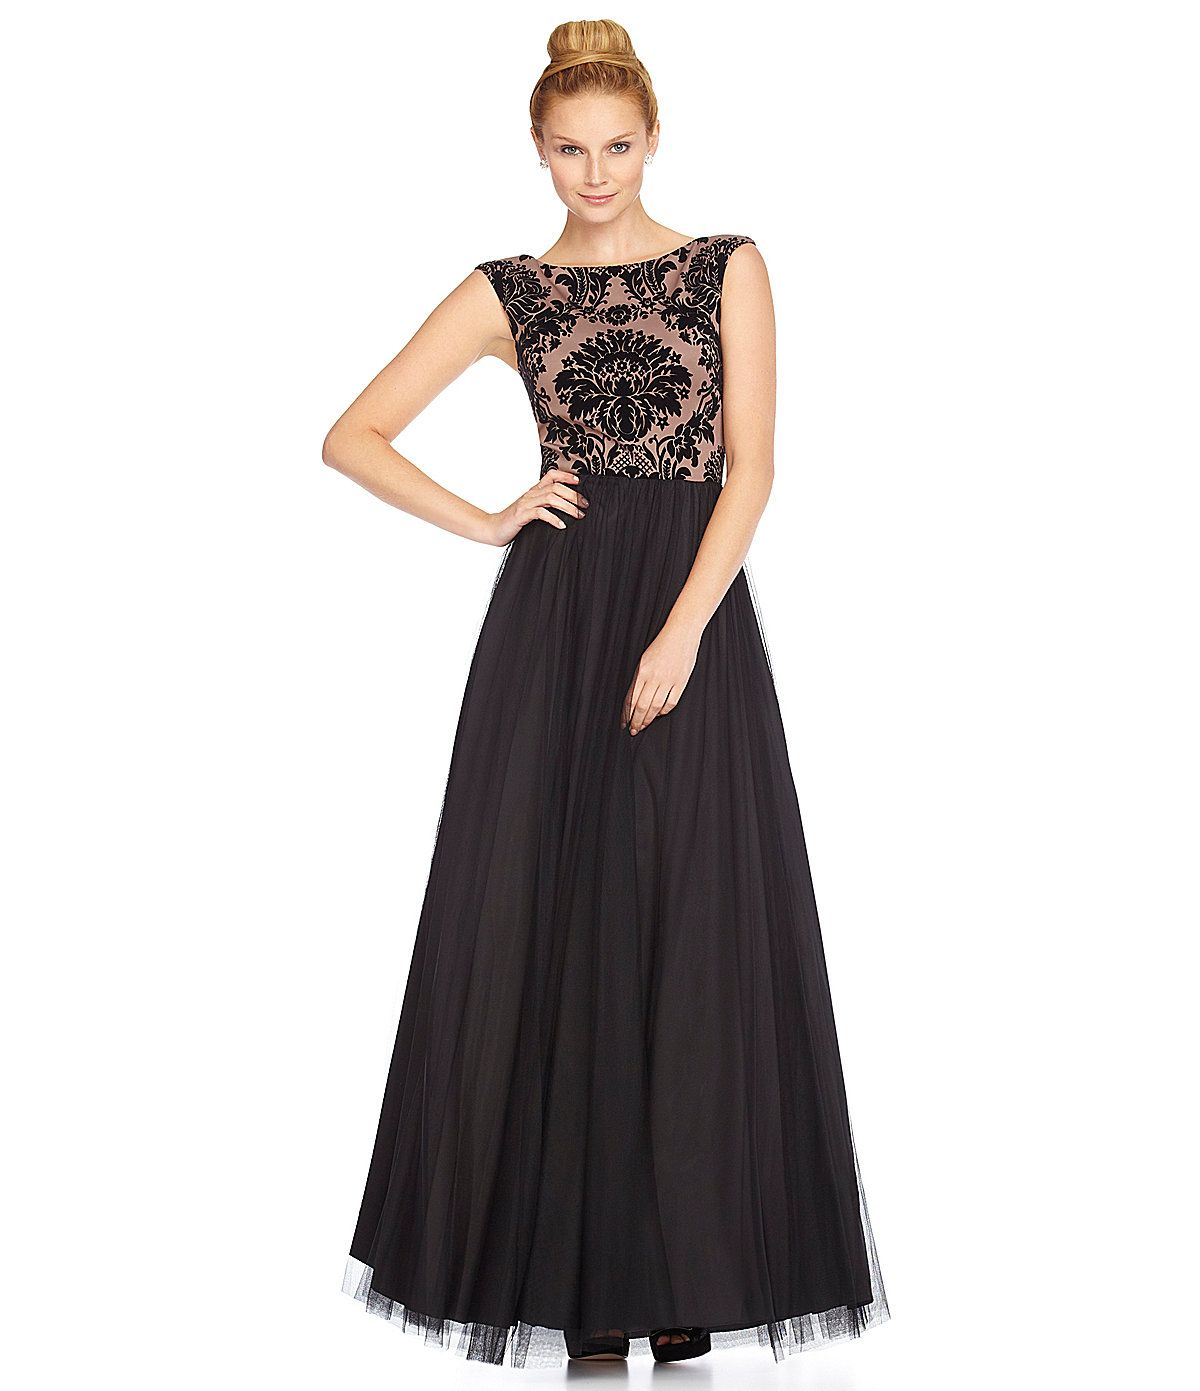 mob dress dillard 39 s let 39 s play dress up pinterest